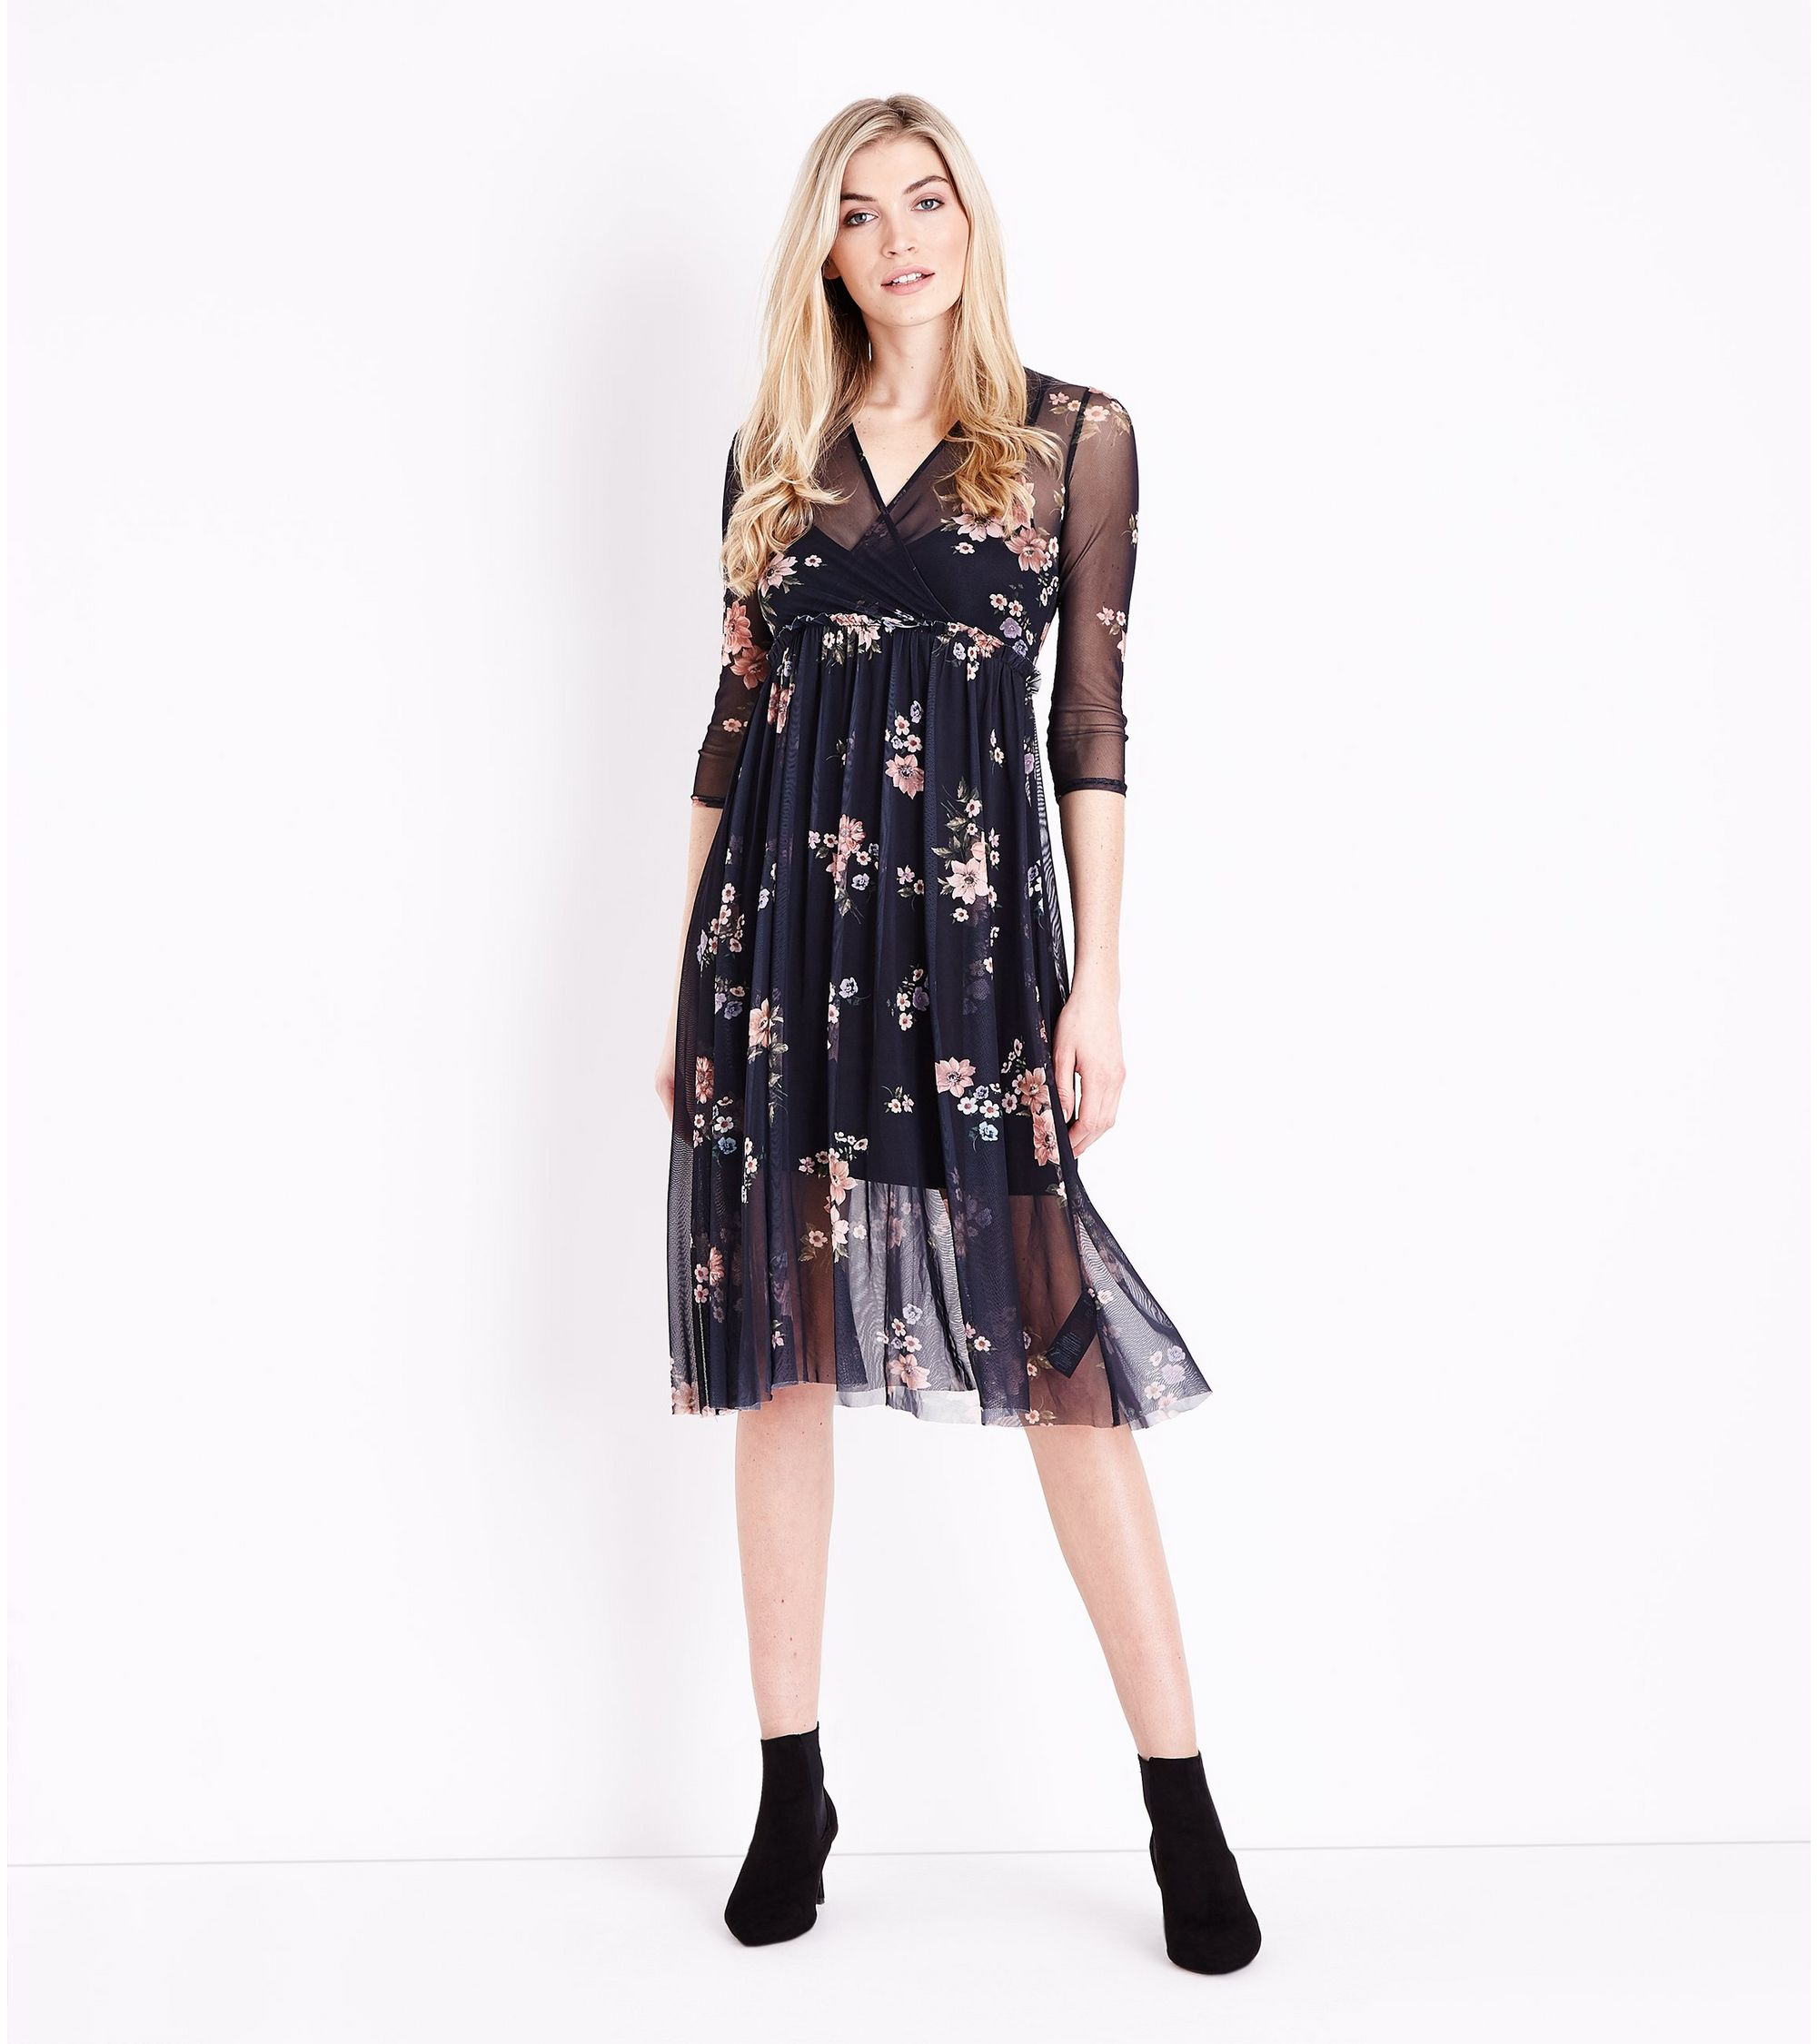 1e942713a05 Black Floral Print Mesh Wrap Front Midi Dress New Look – DACC